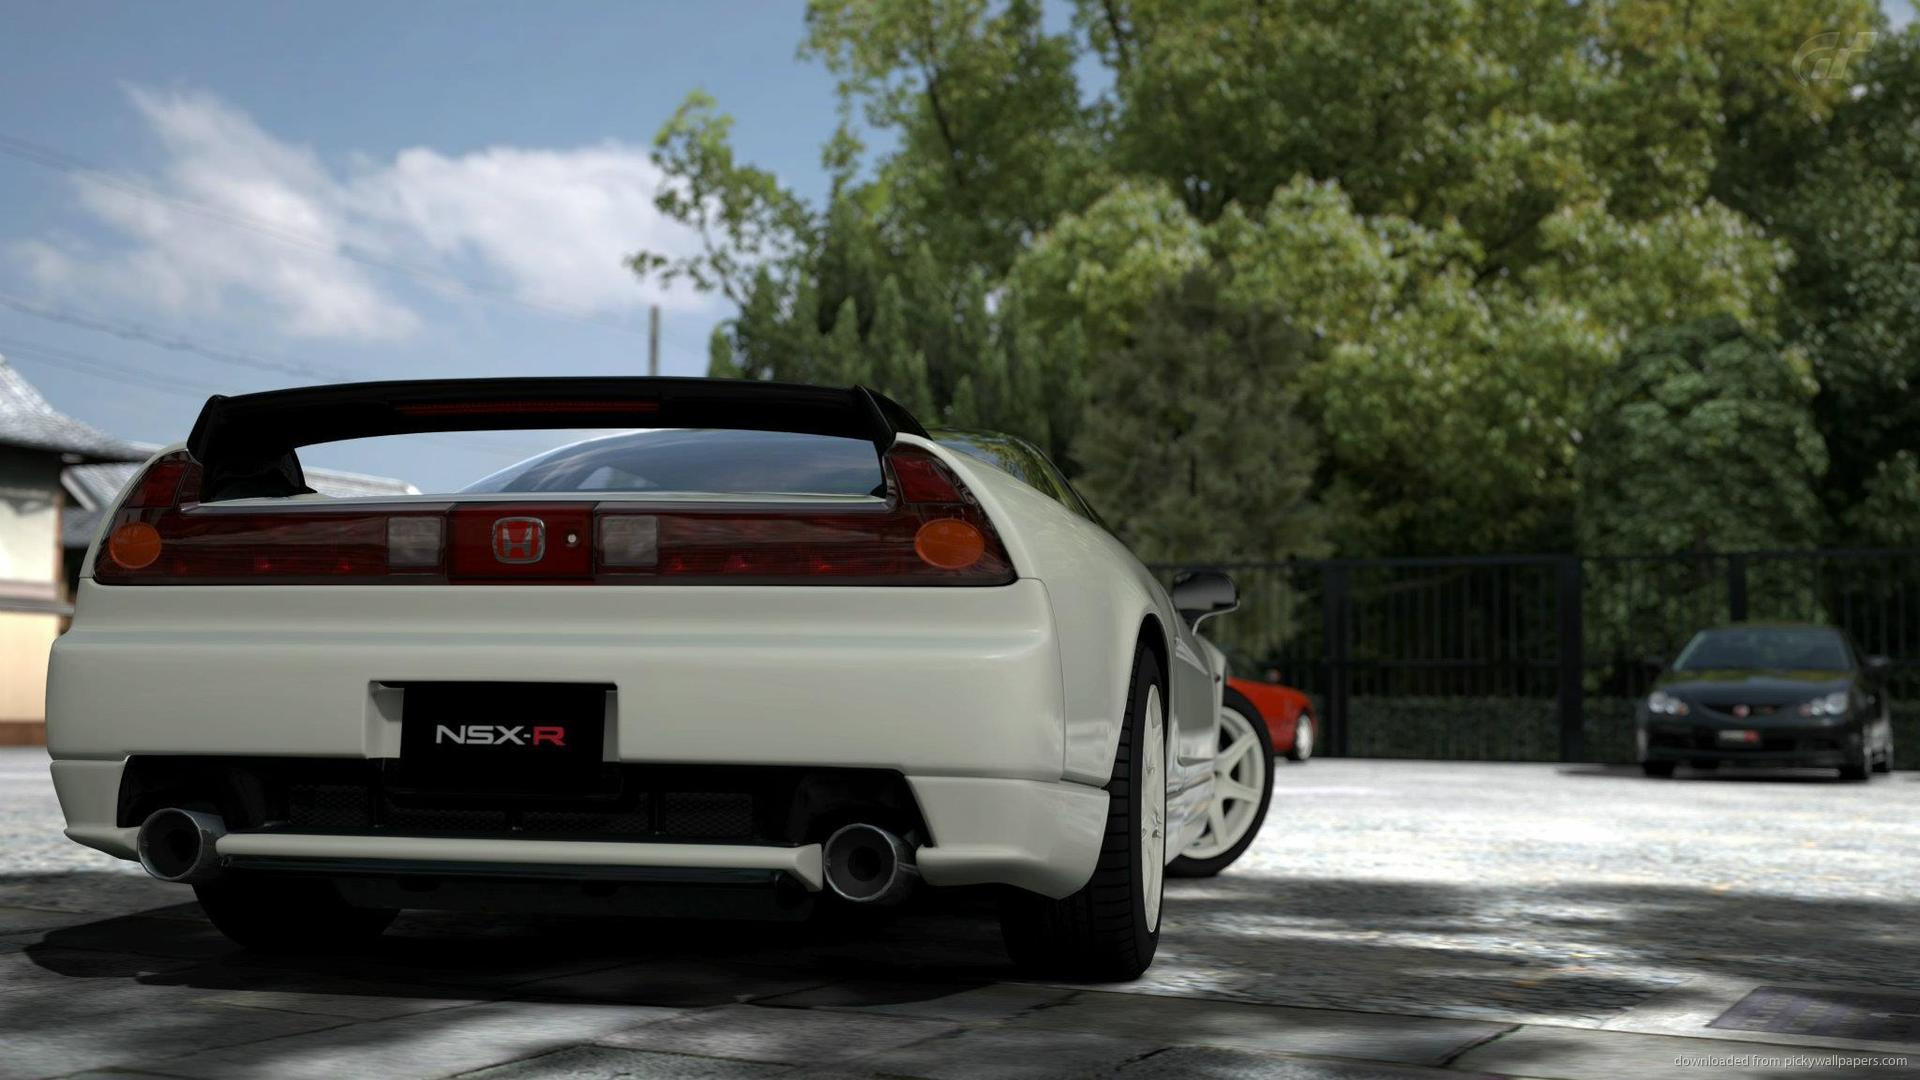 Honda nsx wallpapers high resolution and quality downloadhonda nsx honda nsx hd background voltagebd Gallery